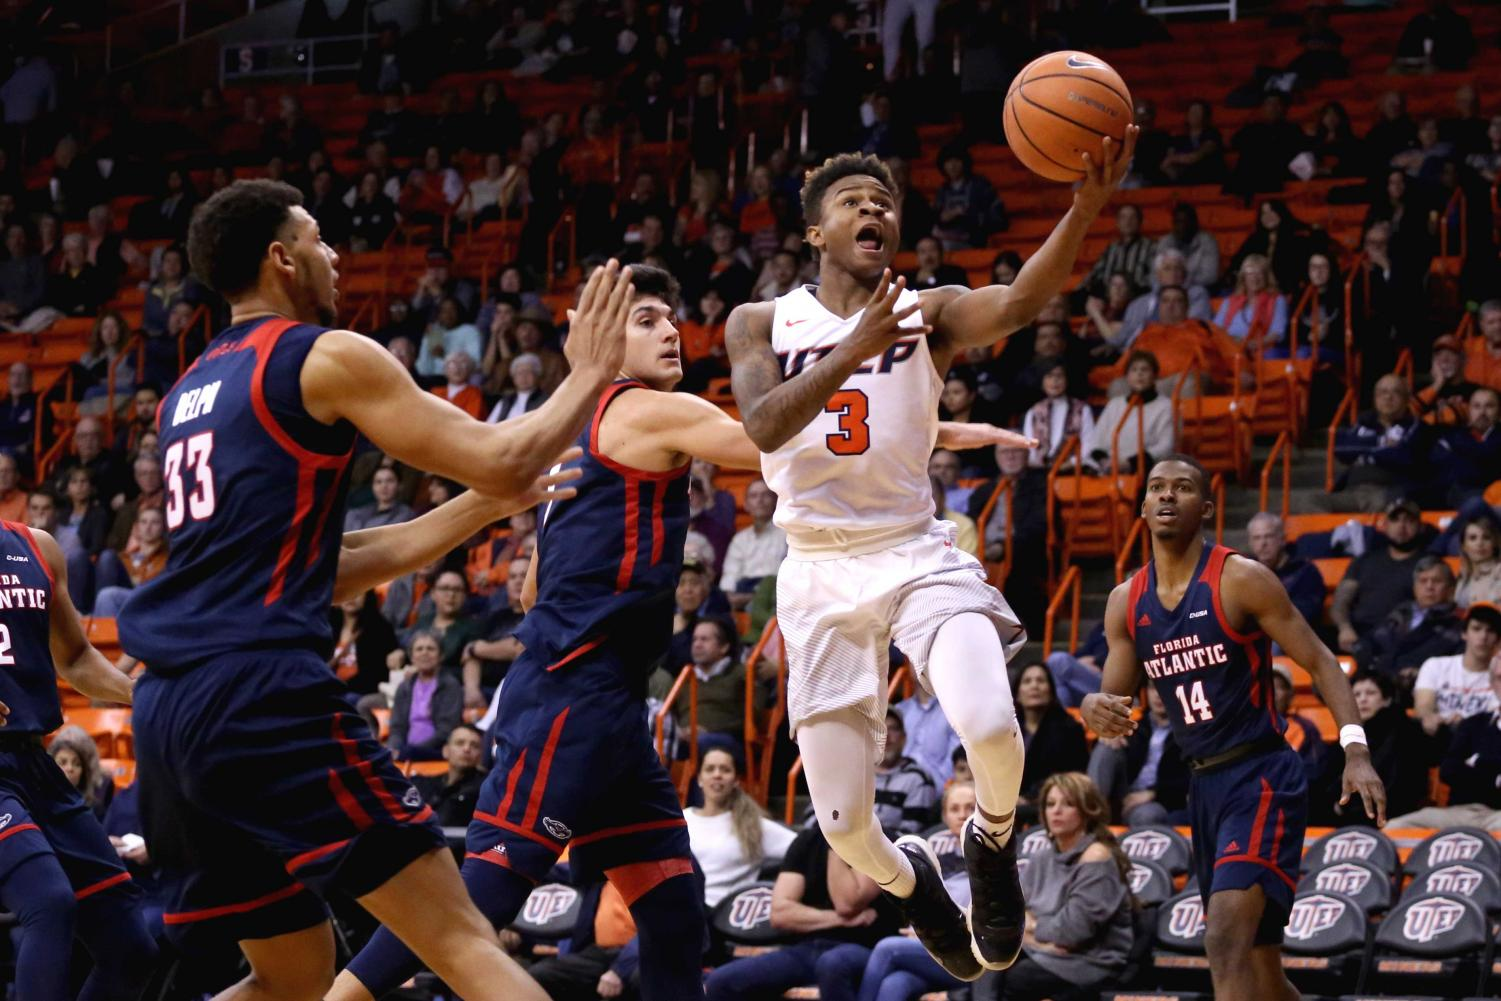 The UTEP men's basketball team faces UAB and Middle Tennessee on the road this week.